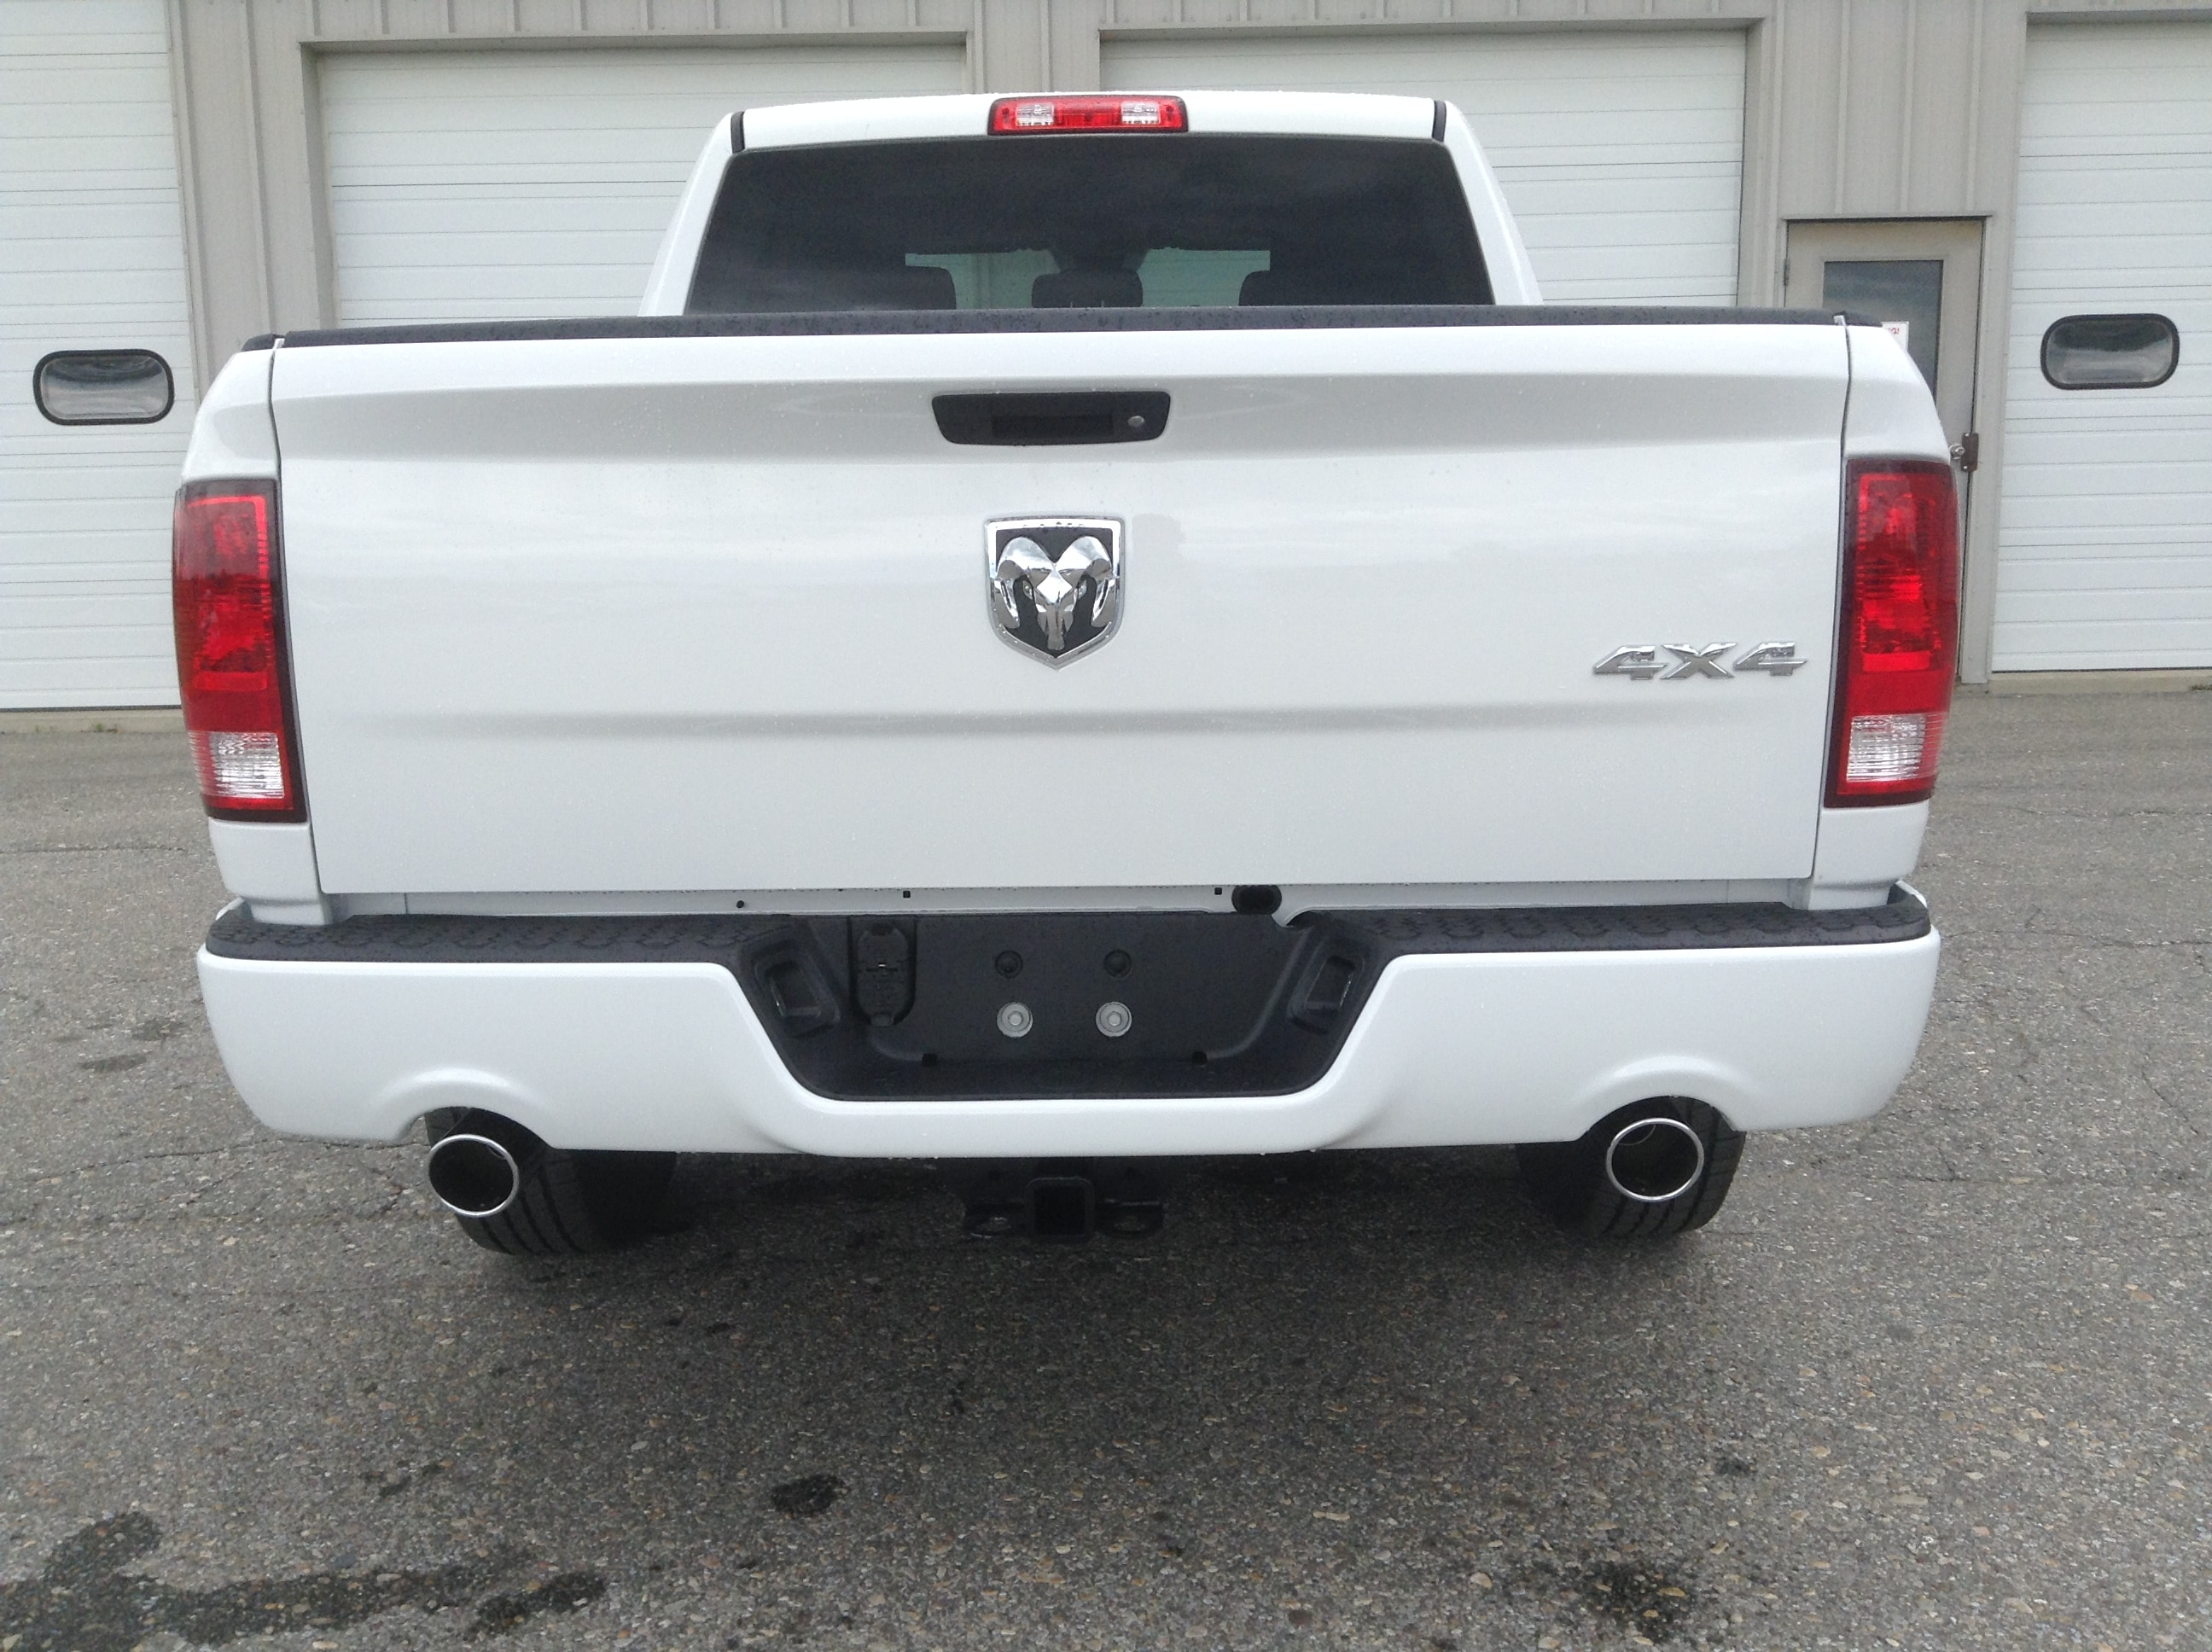 2017 Ram 1500 Crew Cab 4x4, Pickup #TK7817 - photo 7